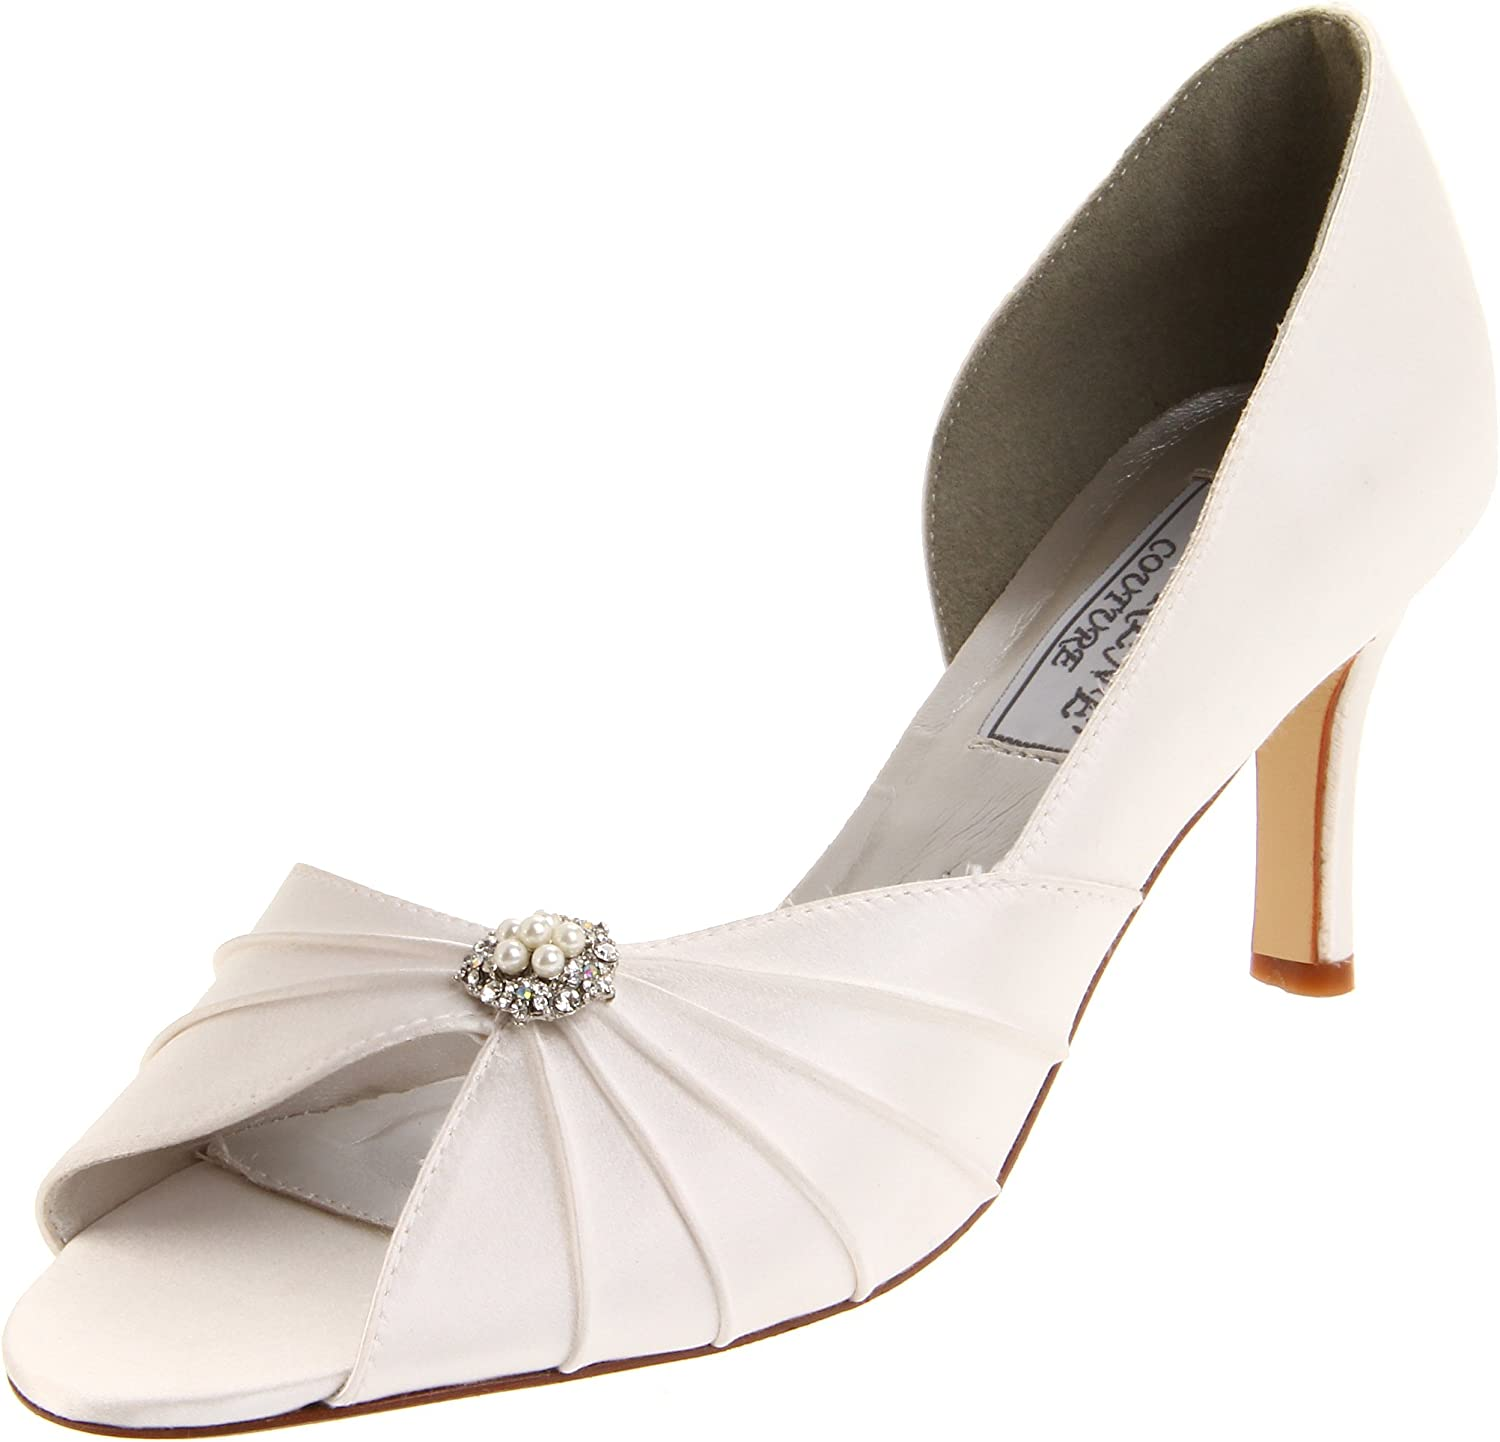 Liz Rene Couture Women's Melissa Pump White